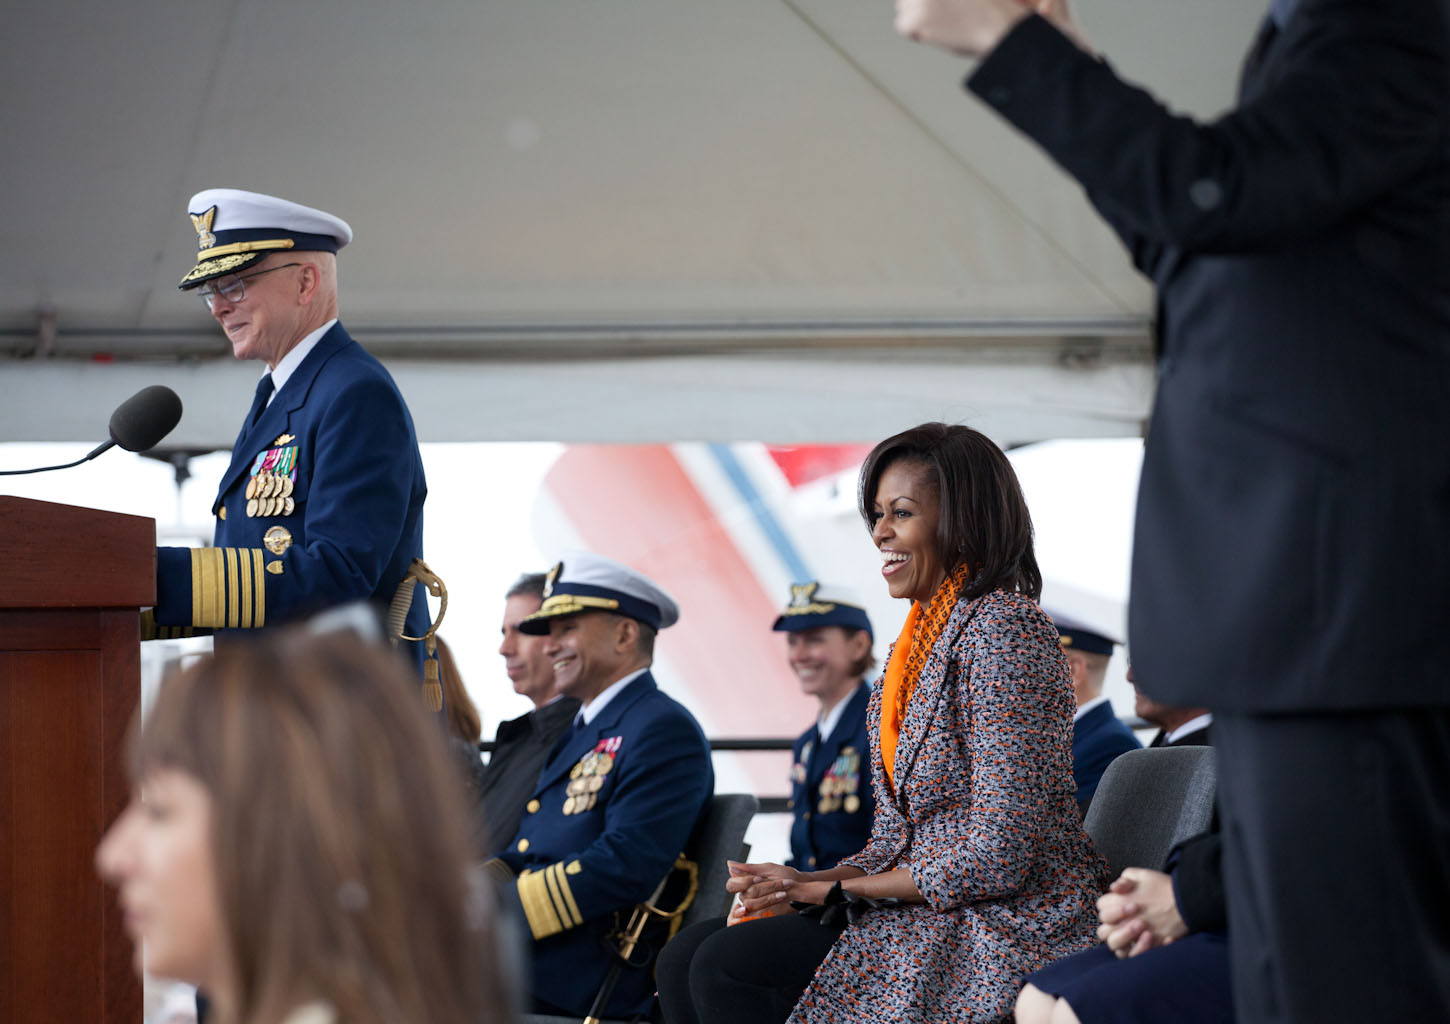 First Lady Michelle Obama at the ceremony to commission the U.S. Coast Guard Cutter Stratton (April 1, 2012)